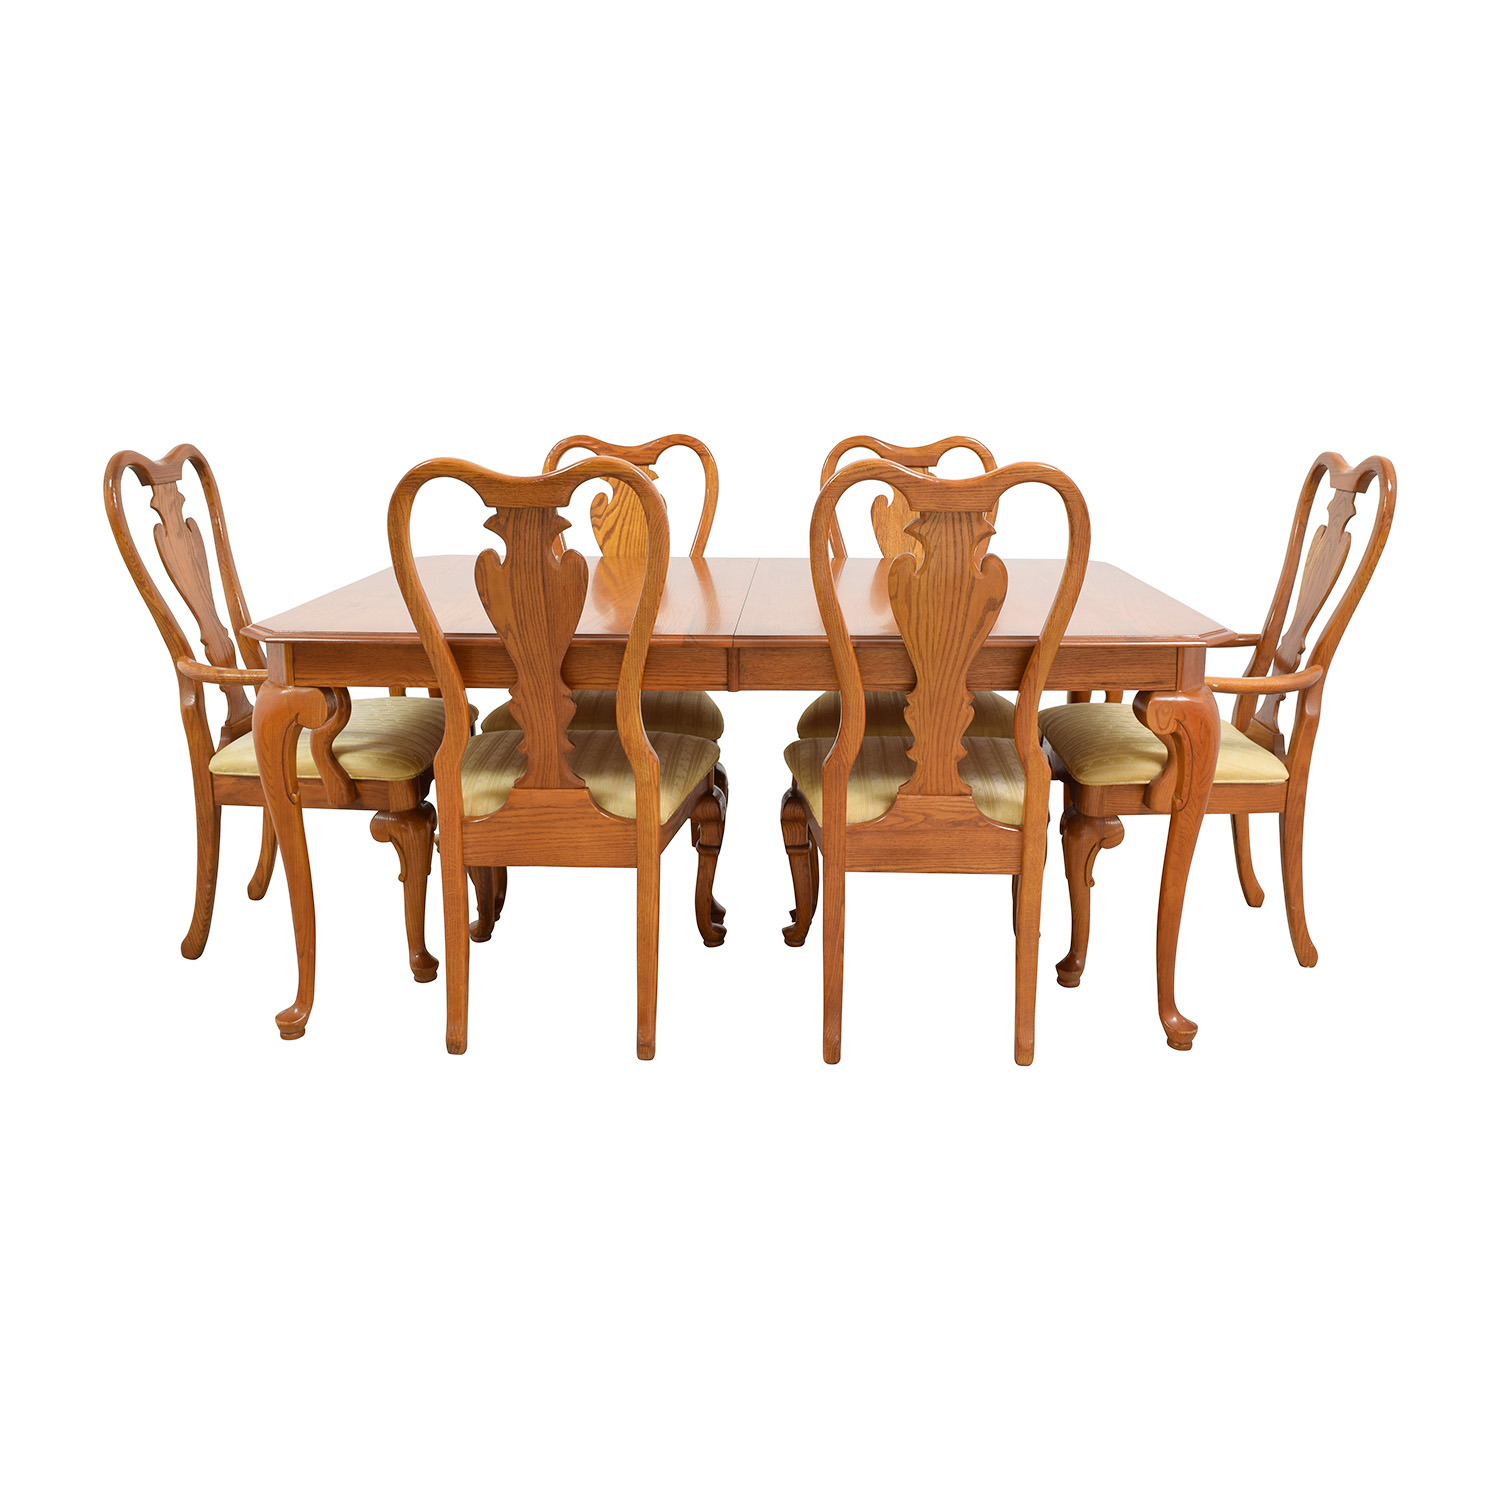 Classic Six-Piece Wooden Dining Set price